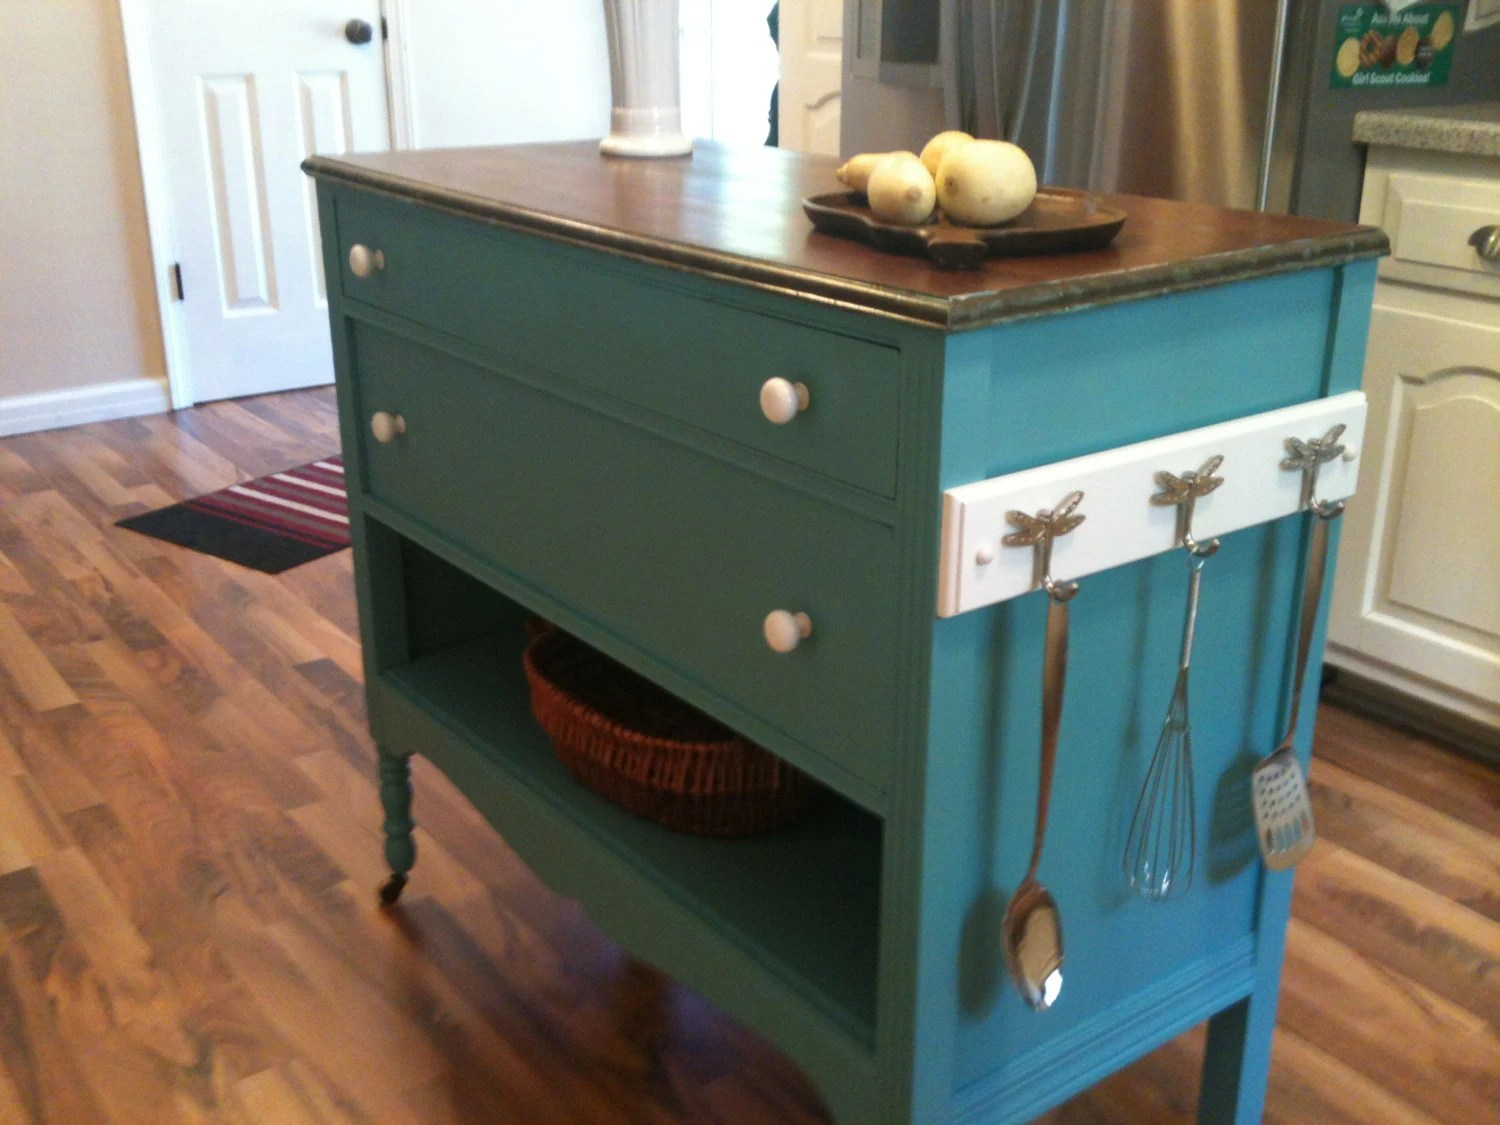 kitchen island made out of dresser remodeling ideas repurposed upcycled into charming turquoise aqua